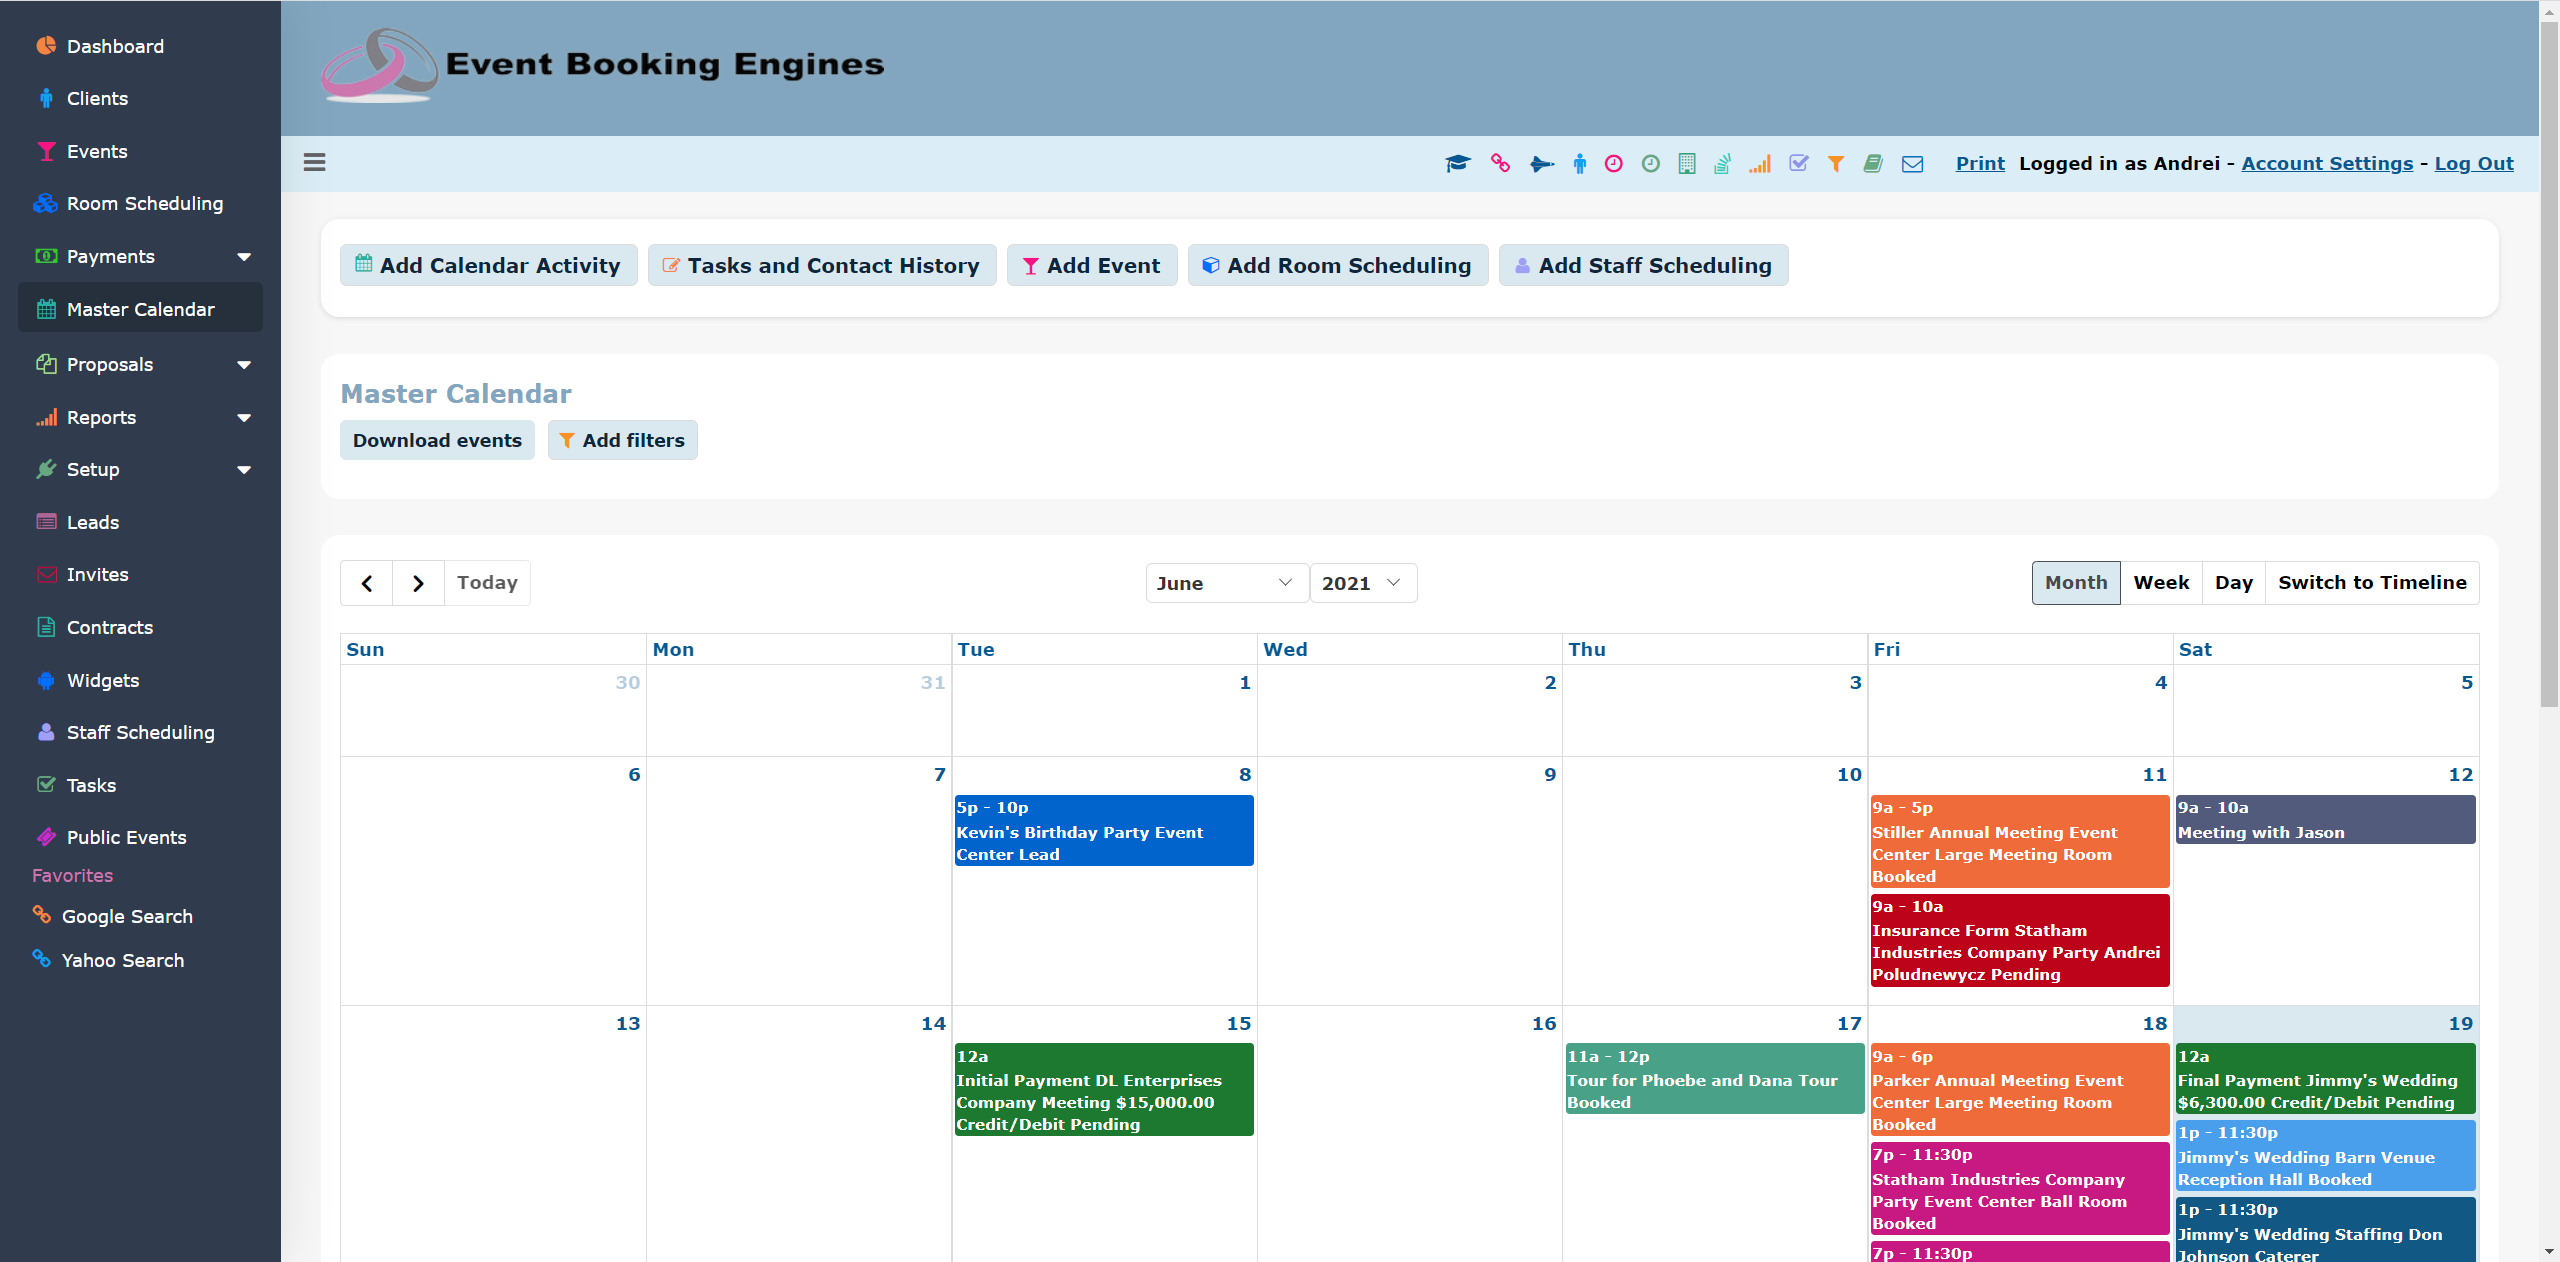 Event Booking Engines Software - Master Calendar Grid View